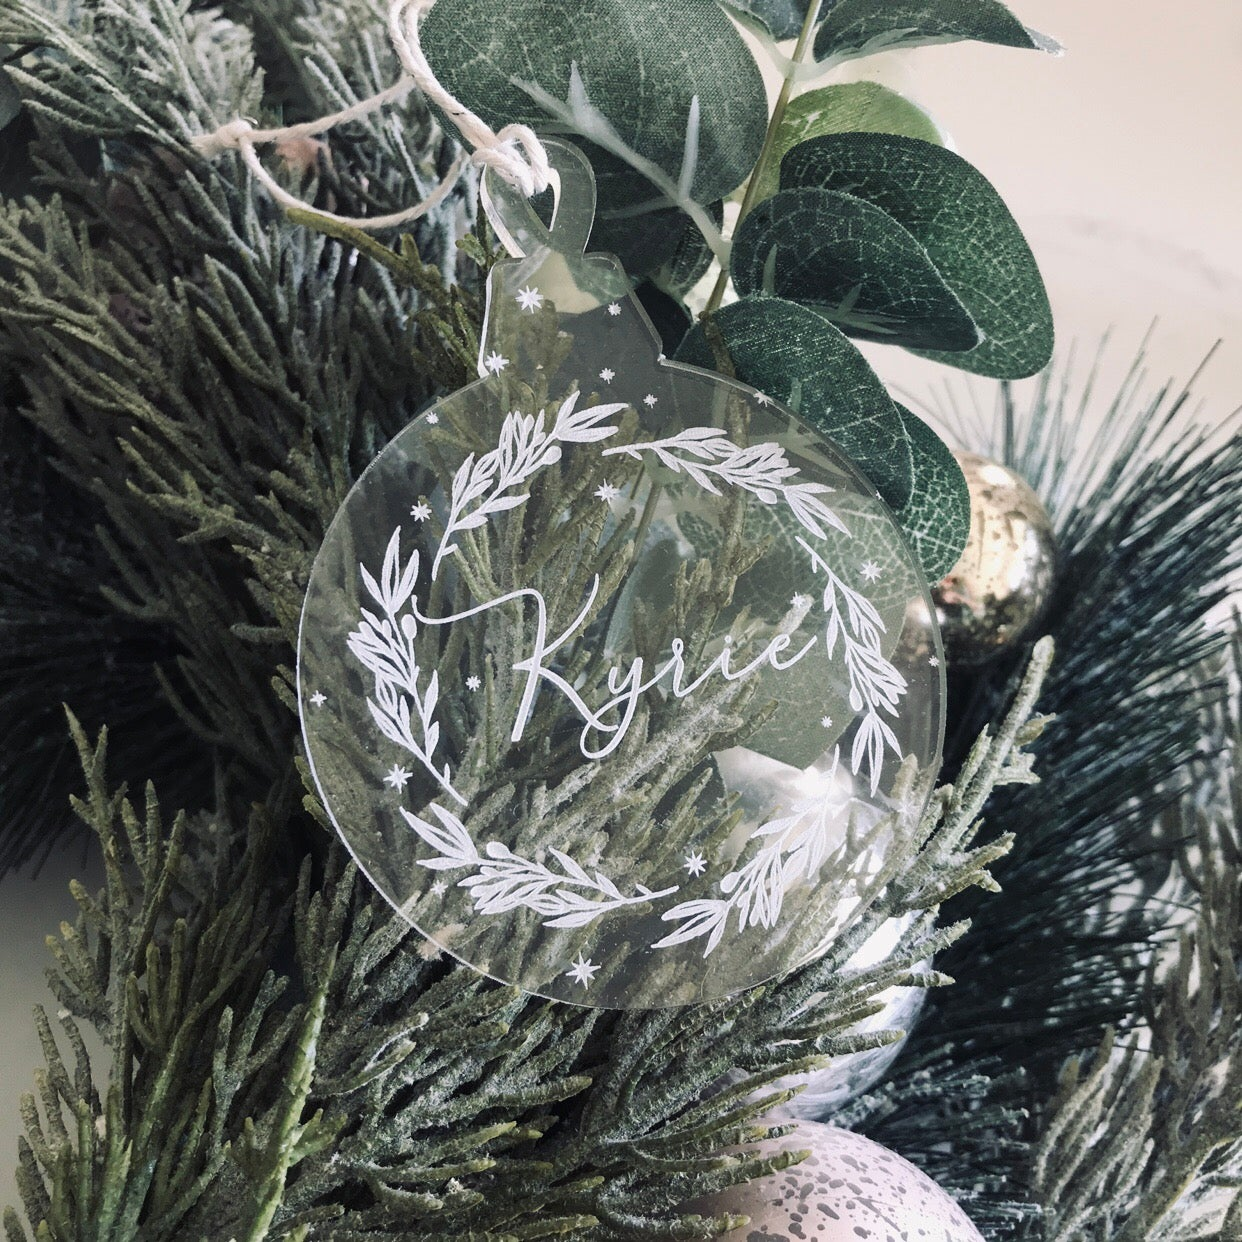 Image of Starry Wreath ornament